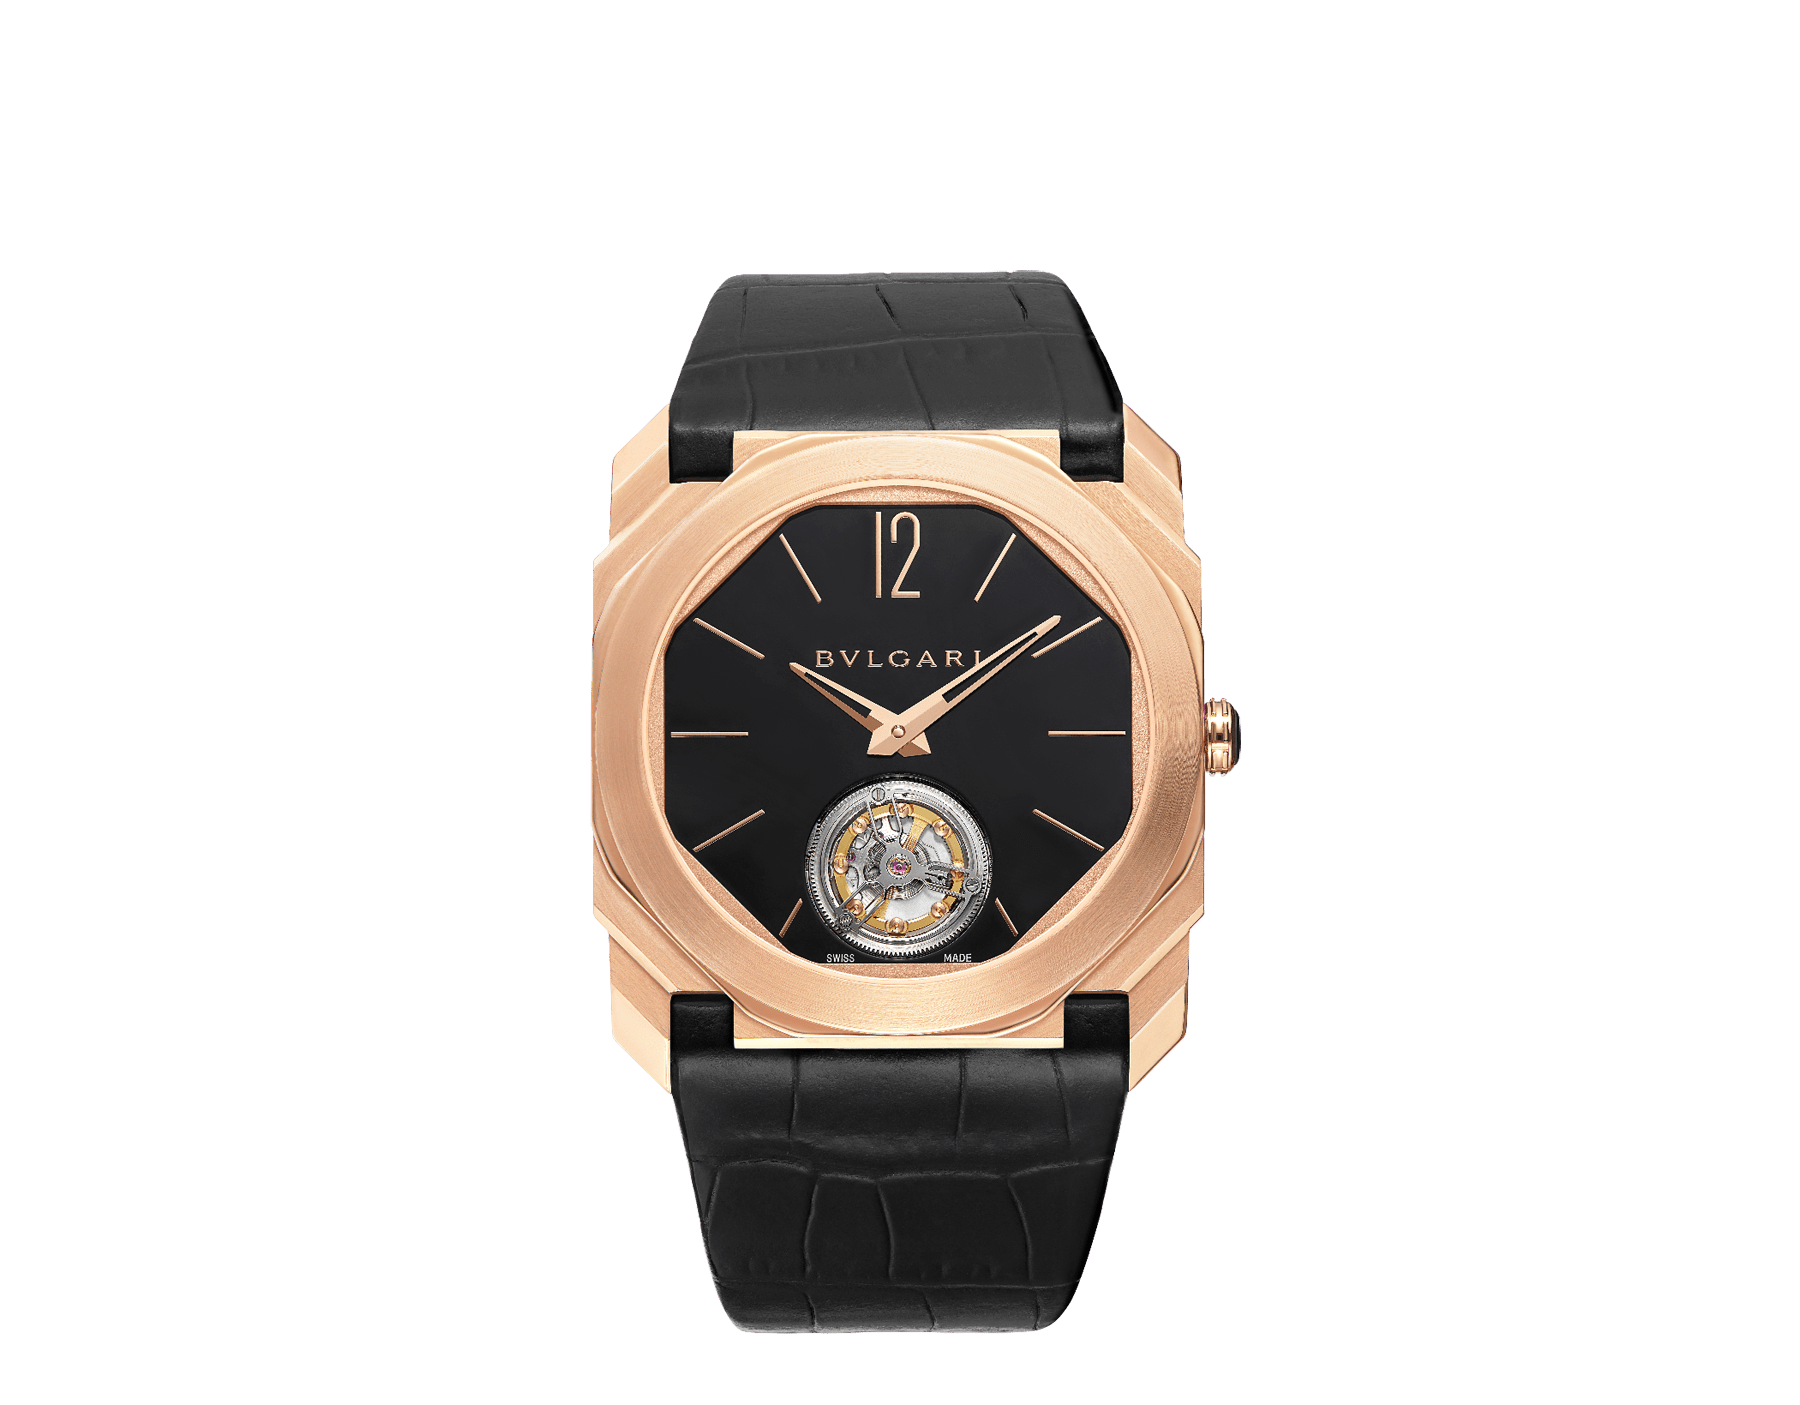 Octo Finissimo Tourbillon watch with extra thin mechanical manufacture movement, manual winding and ball-bearing system, 18 kt rose gold case, black lacquered dial with tourbillon see-through opening and black alligator bracelet. 102346 image 1